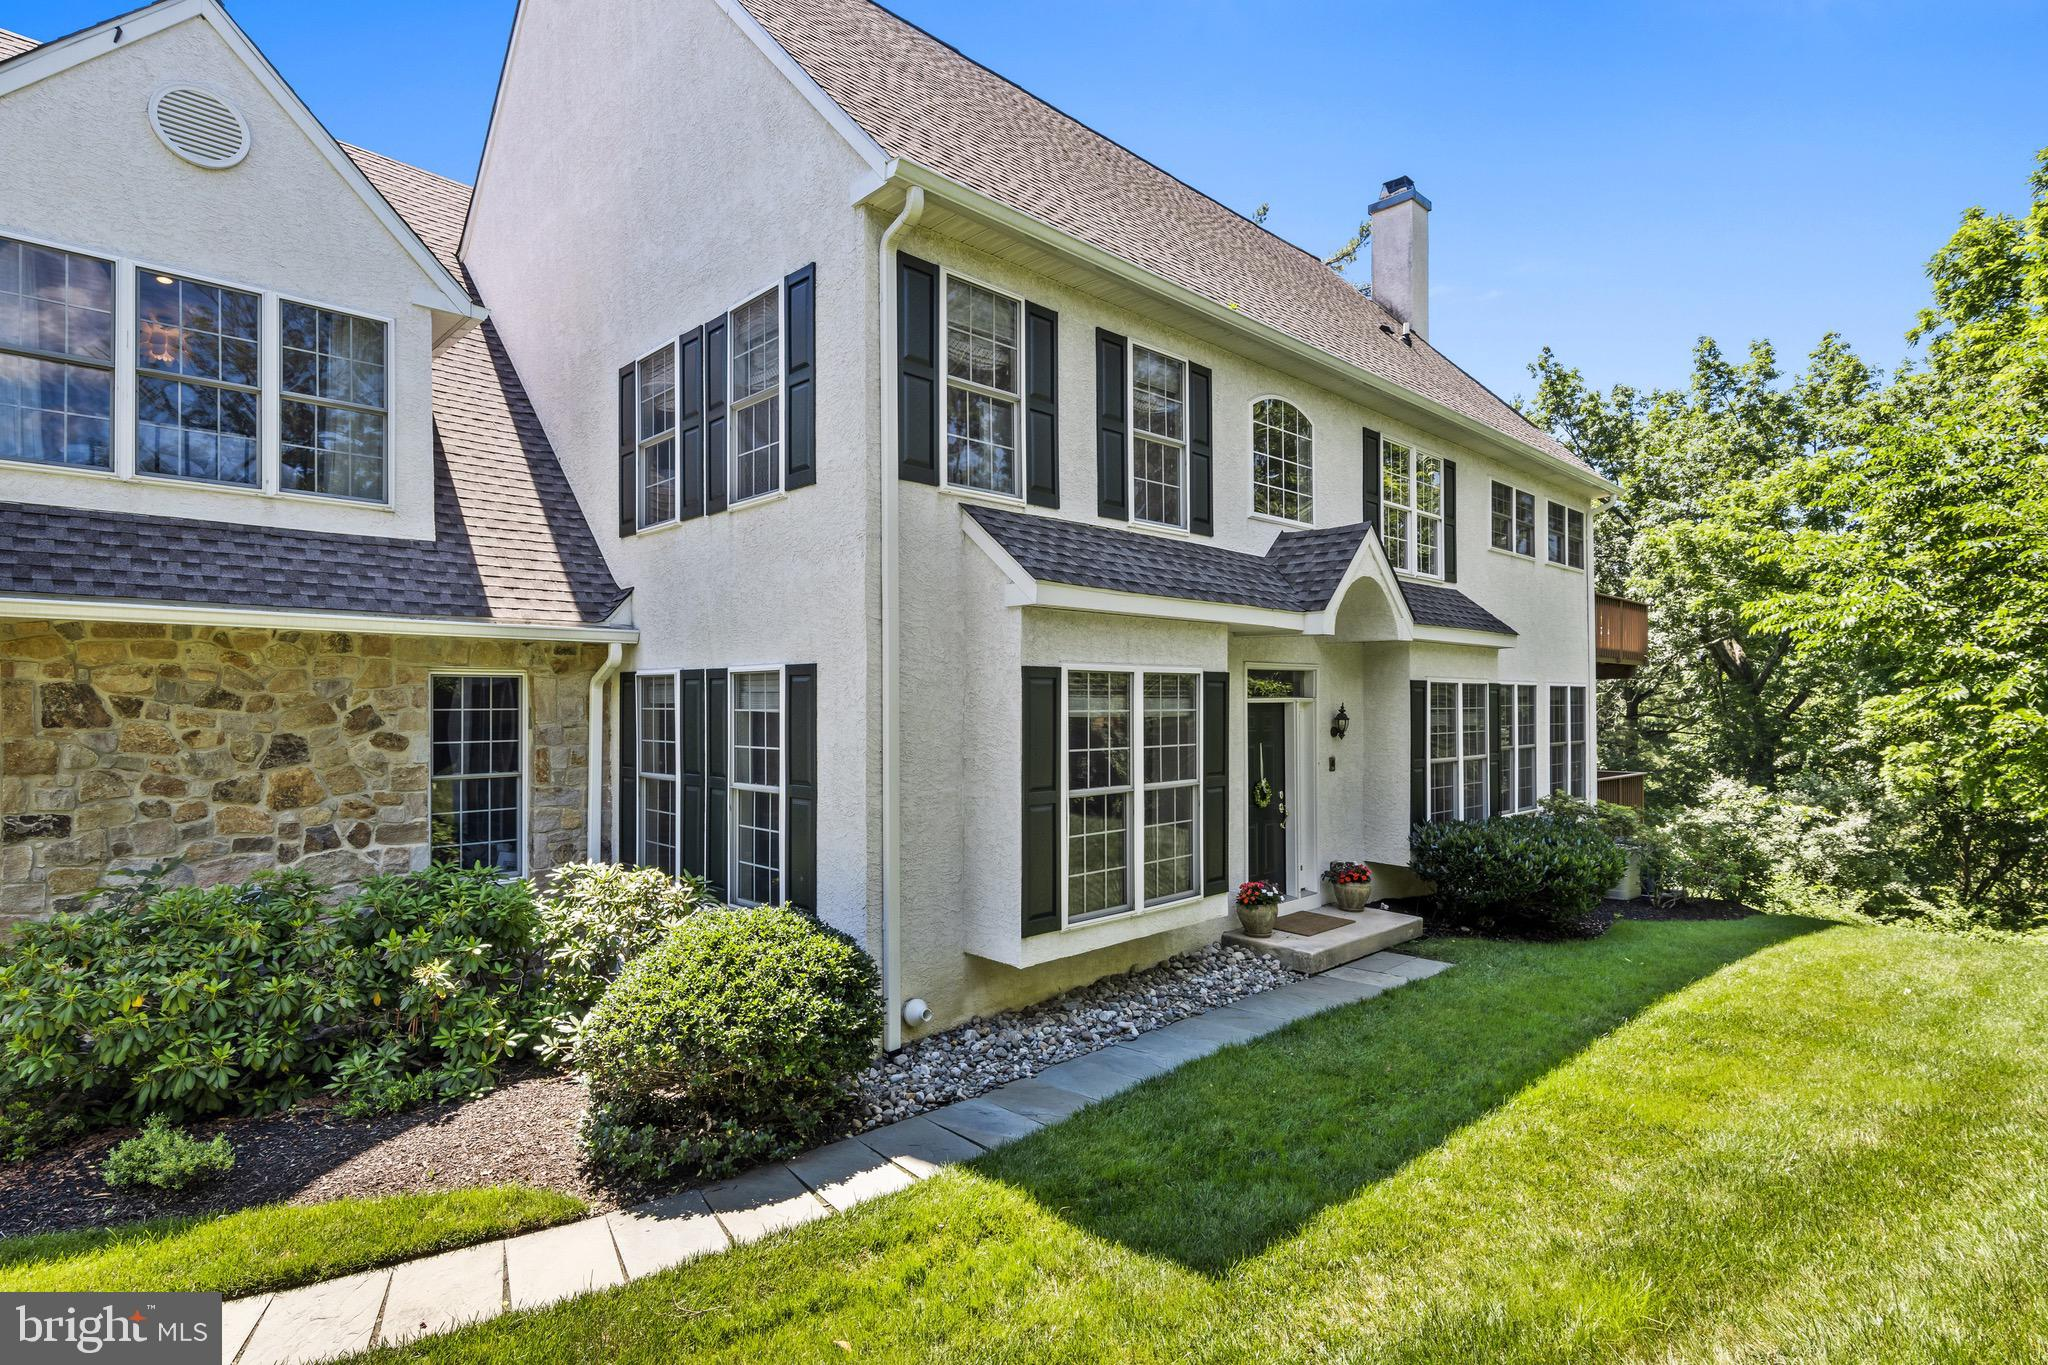 THIS STUNNING HOME IN THE BEAUTIFUL AREA OF NEWTOWN SQUARE IN PENN'S PRESERVE.IS WAITNG FOR YOU TO CALL HOME!  THIS SPACIOUS END UNIT  IS PRIVATE,  HAS BEAUTIFUL VIEWS AND  WONDERFUL LIGHT THAT POURS IN FROM EVERY ROOM.  THE MINUTE YOU WALK IN YOU SEE AN OPEN FLOOR PLAN WITH EVERYTHING ONE WOULD WANT.  AS YOU ENTER THE TWO STORY FOYER YOU SEE THE SPACIOUS YET COZY FAMILY ROOM, LARGE AND UPDATED KITCHEN, BREAKFAST AREA AND ADDITIONAL ROOM FOR WHATEVER YOUR NEEDS MAY BE. THERE ARE HARDWOOD FLOORS THROUGHOUT THE FIRST LEVEL WITH POWDER ROOM, LAUNDRY, GAS FIREPLACE AND AMAZING DECK OFF THE BREAKFAST ROOM FOR ADDITIONAL DINING OR ENTERTAINING SPACE. THIS LEVEL IS COMPLETED WITH A ELEVATOR AND INTERIOR ACCESS TO THE 2 CAR SPACIOUS GARAGE.  THE SECOND FLOOR HAS THREE EXTREMELY LARGE  BEDROOMS AND 2 FULL LARGE BATHROOMS.  THE MASTER BEDROOM HAS A SITTING AREA WITH WALKIN CLOSET AND DECK OVERLOOKING BEAUTIFUL PRIVATE SPACE.  THE SECOND BEDROOM IS CONNECTED TO A FULL BATHROOM WITH ANOTHER LARGE CLOSET. THE THIRD BEDROOM HAS BEAUTIFUL WINDOWS PROVIDING GREAT LIGHT THROUGHOUT.  THE LOWER LEVEL IS COMPLETELY FINISHED WITH EXTENSIVE STORAGE,  A FULL GYM IS ALSO ON THIS LEVEL ANOTHER WONDERFUL FEATURE! THIS LEVEL IS COMPLETED WITH A POWER ROOM AND SLIDING DOORS TO THE OUTSIDE.  THIS UNIT IN PENNS PRESERVE IS CENTRALLY LOCATED TO MAJOR HIGHWAYS, IT IS A MUSE SEE!! THIS PROPERTY IS COMING SOON AND SHOWINGS BEGIN ON JULY 1ST.